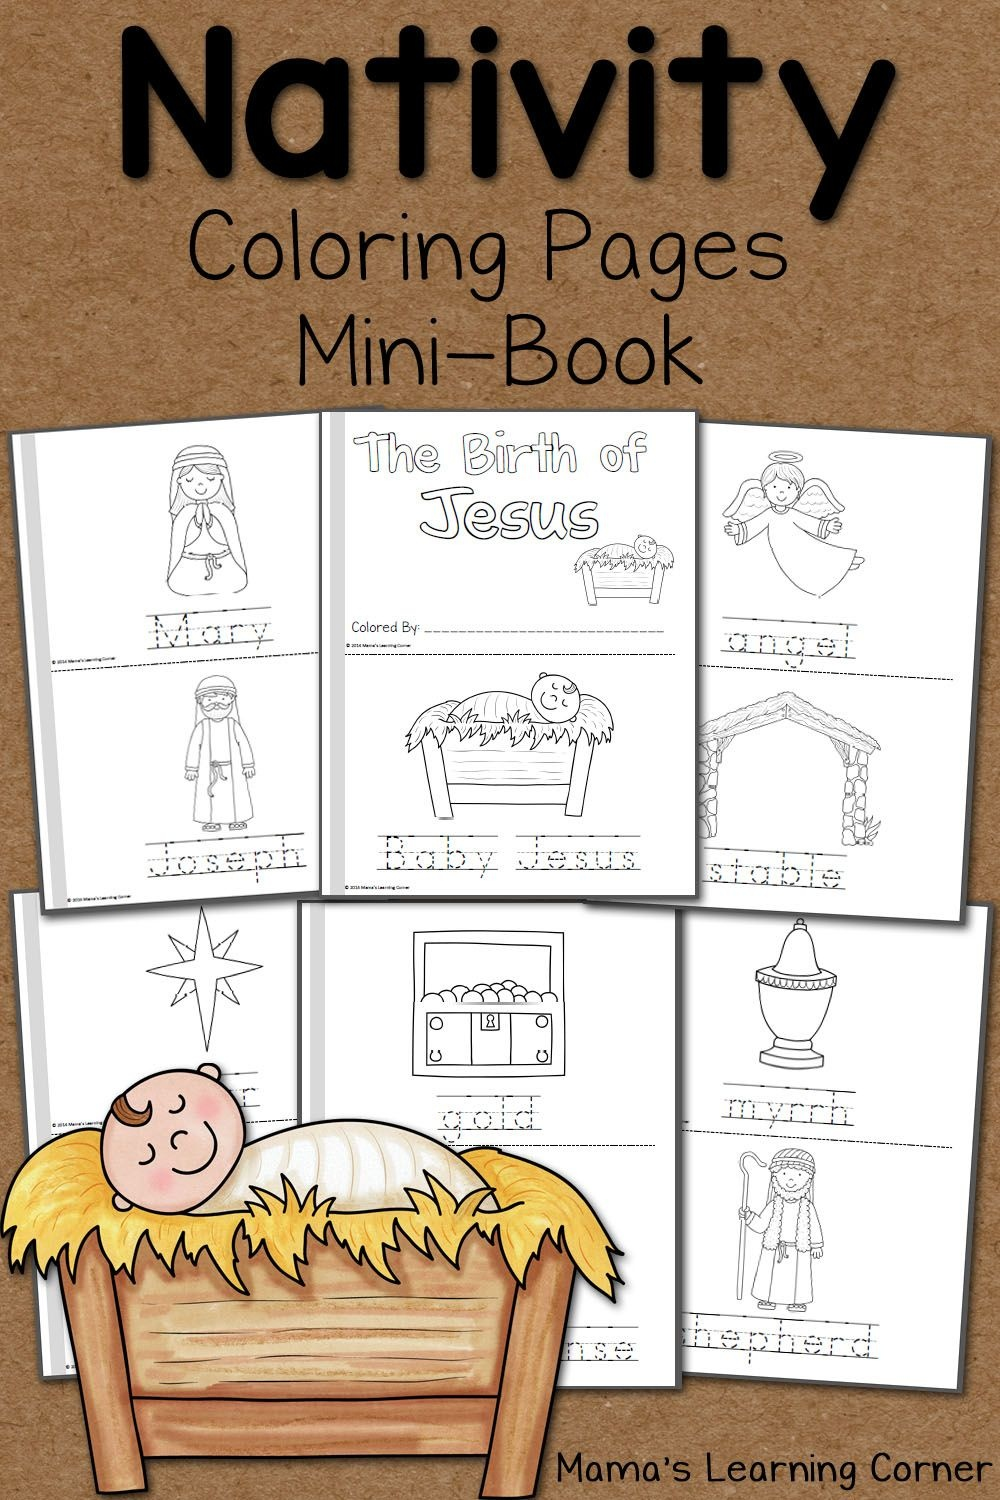 Nativity Coloring Pages   Ultimate Homeschool Board   Nativity - Free Printable Nativity Story Coloring Pages